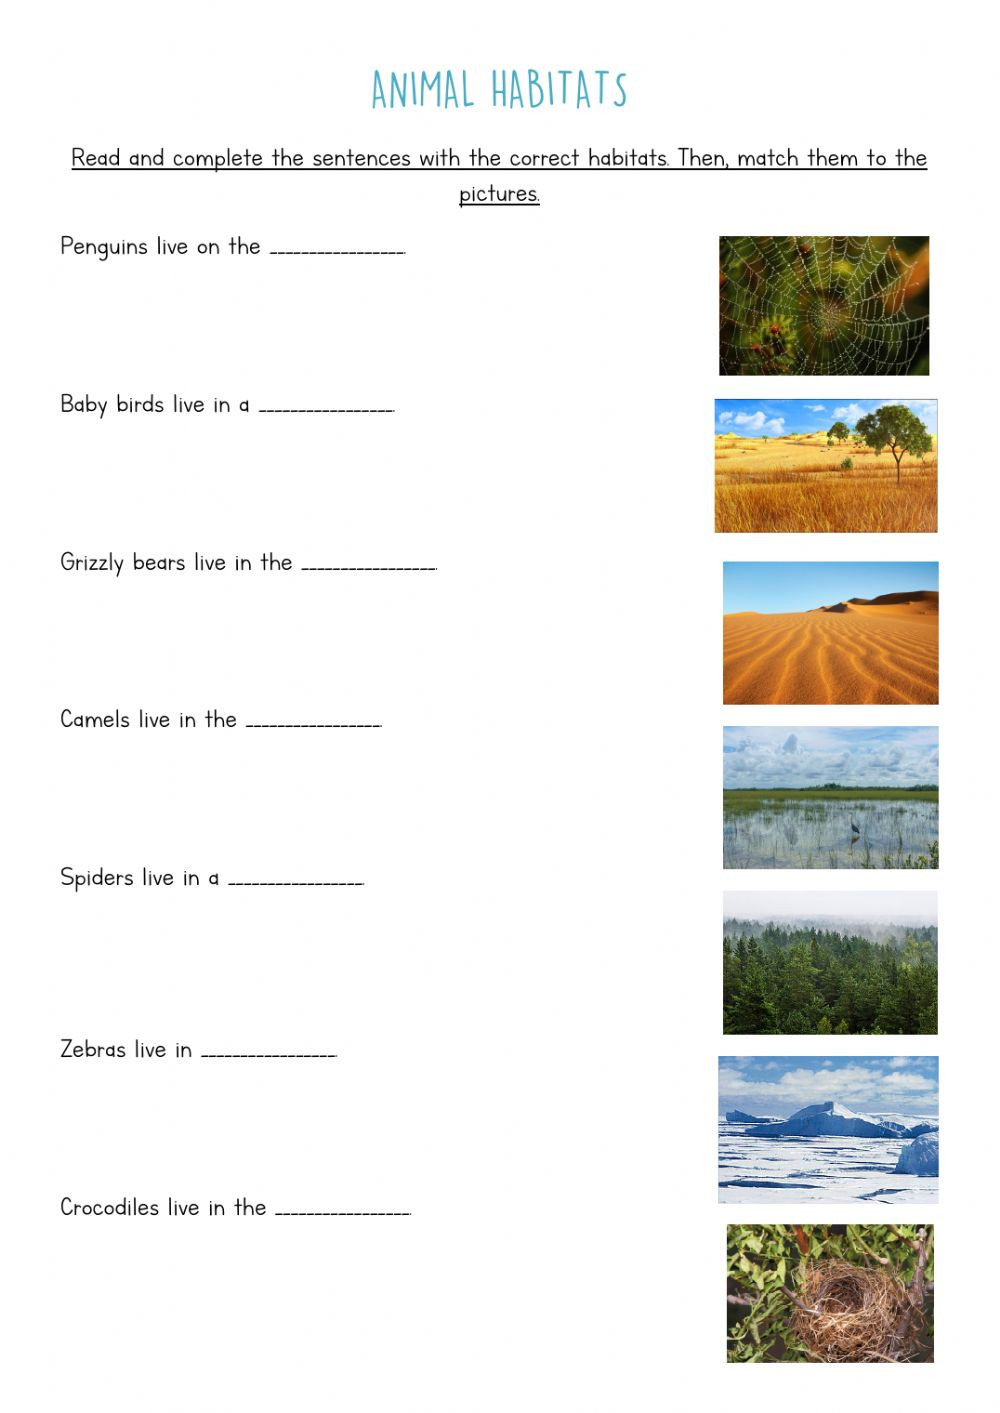 3rd Grade Habitat Worksheets Animal Habitats Plete and Match Interactive Worksheet